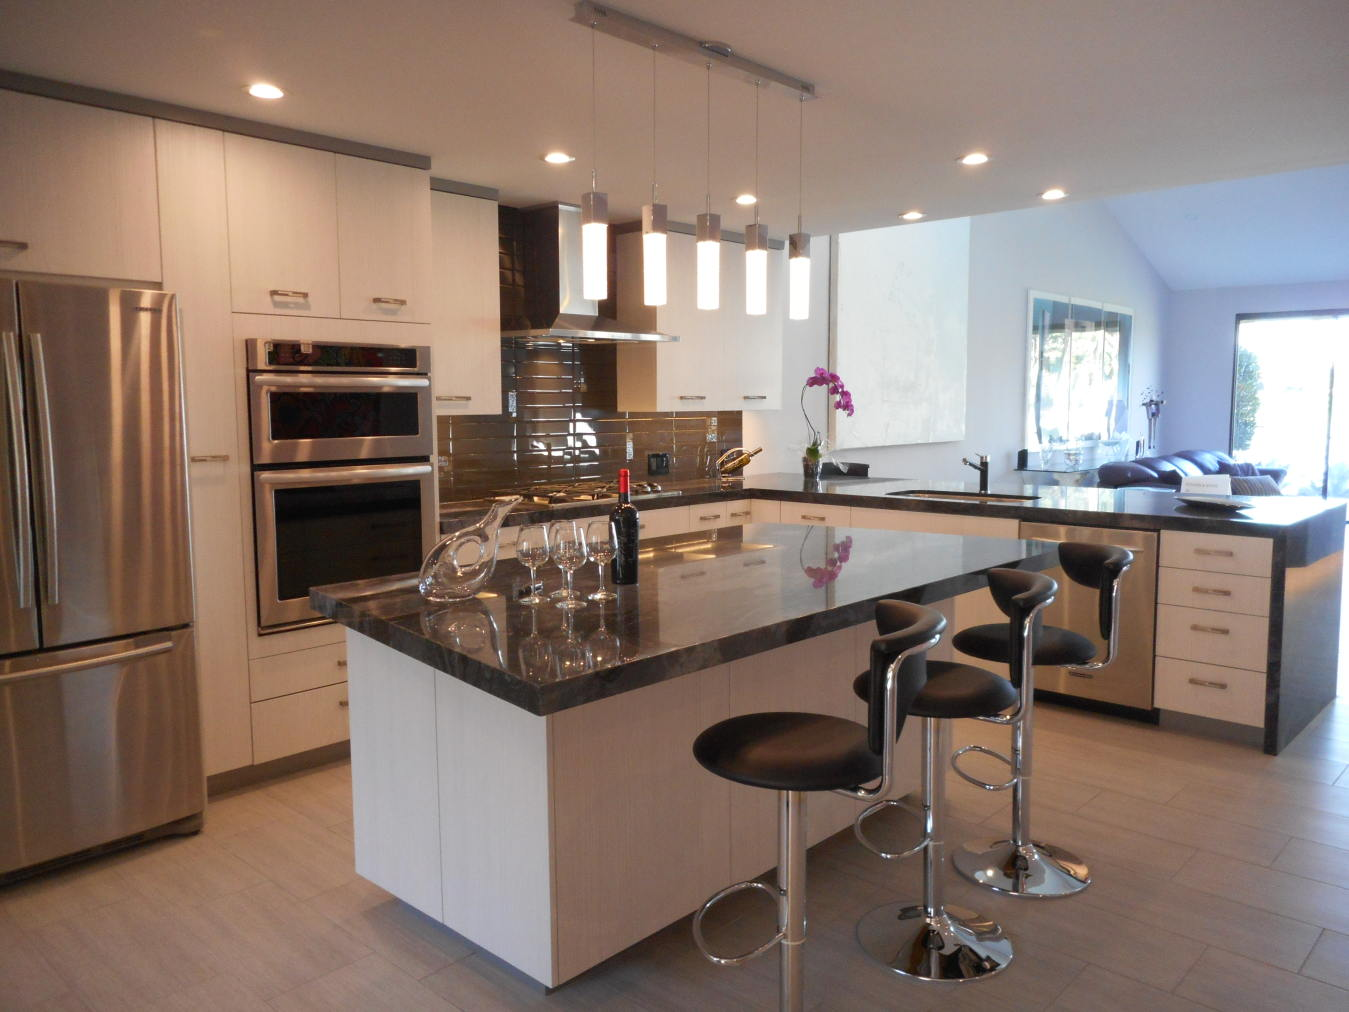 Kitchen Cabinets  Remodeling March 2015  Cabinets of the